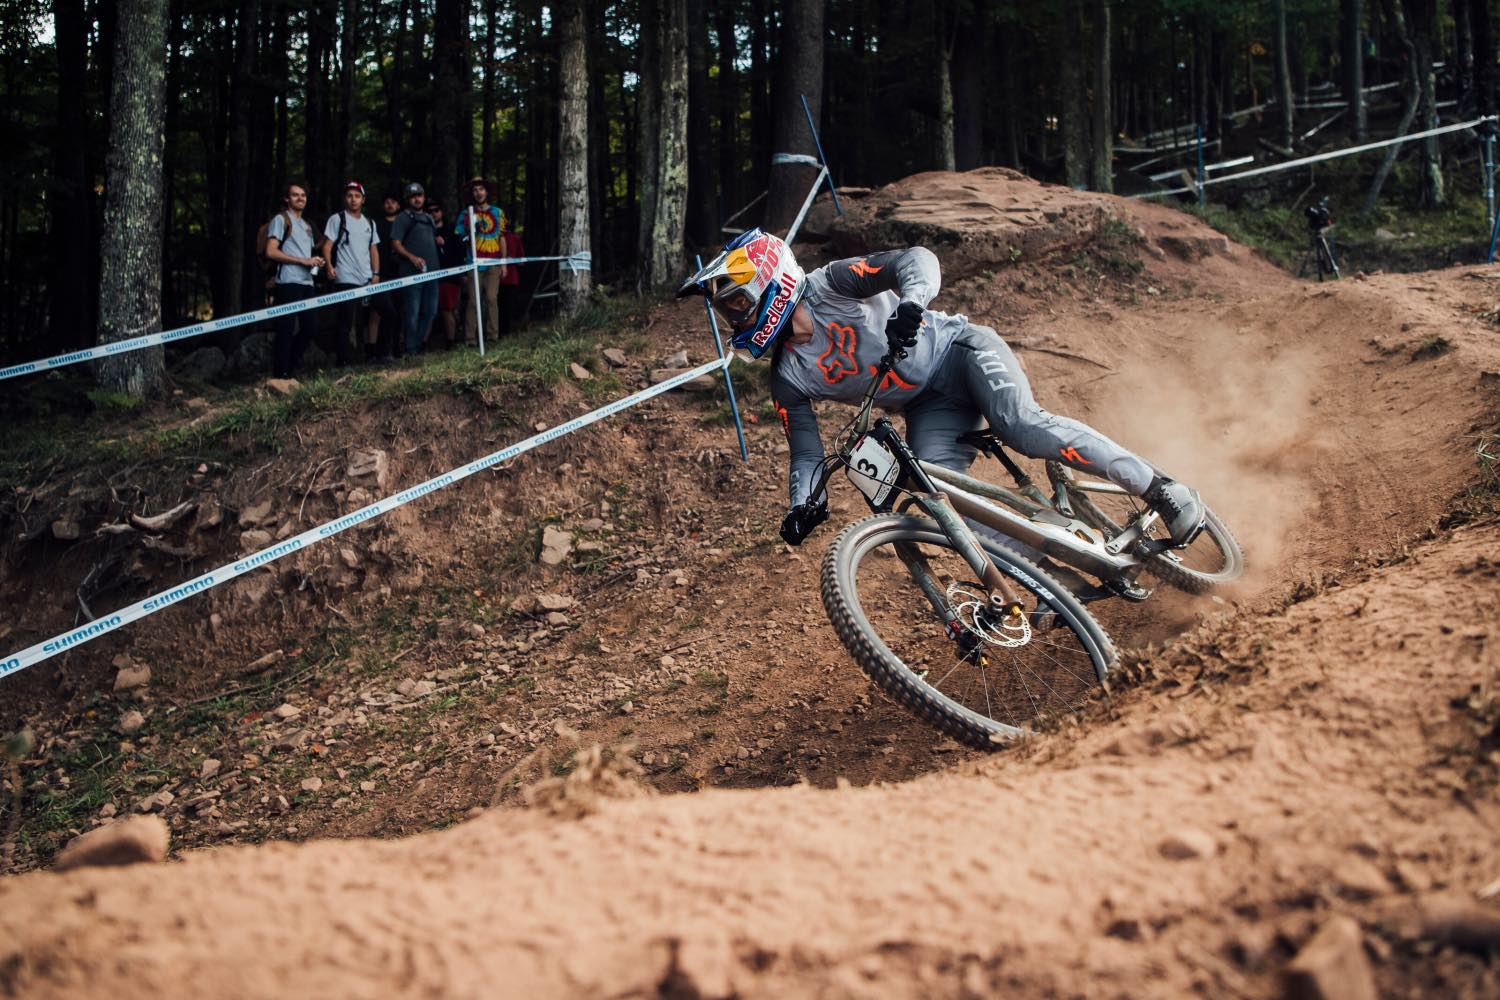 Loic Bruni racing the final round of the 2021 UCI Downhill MTB World Cup